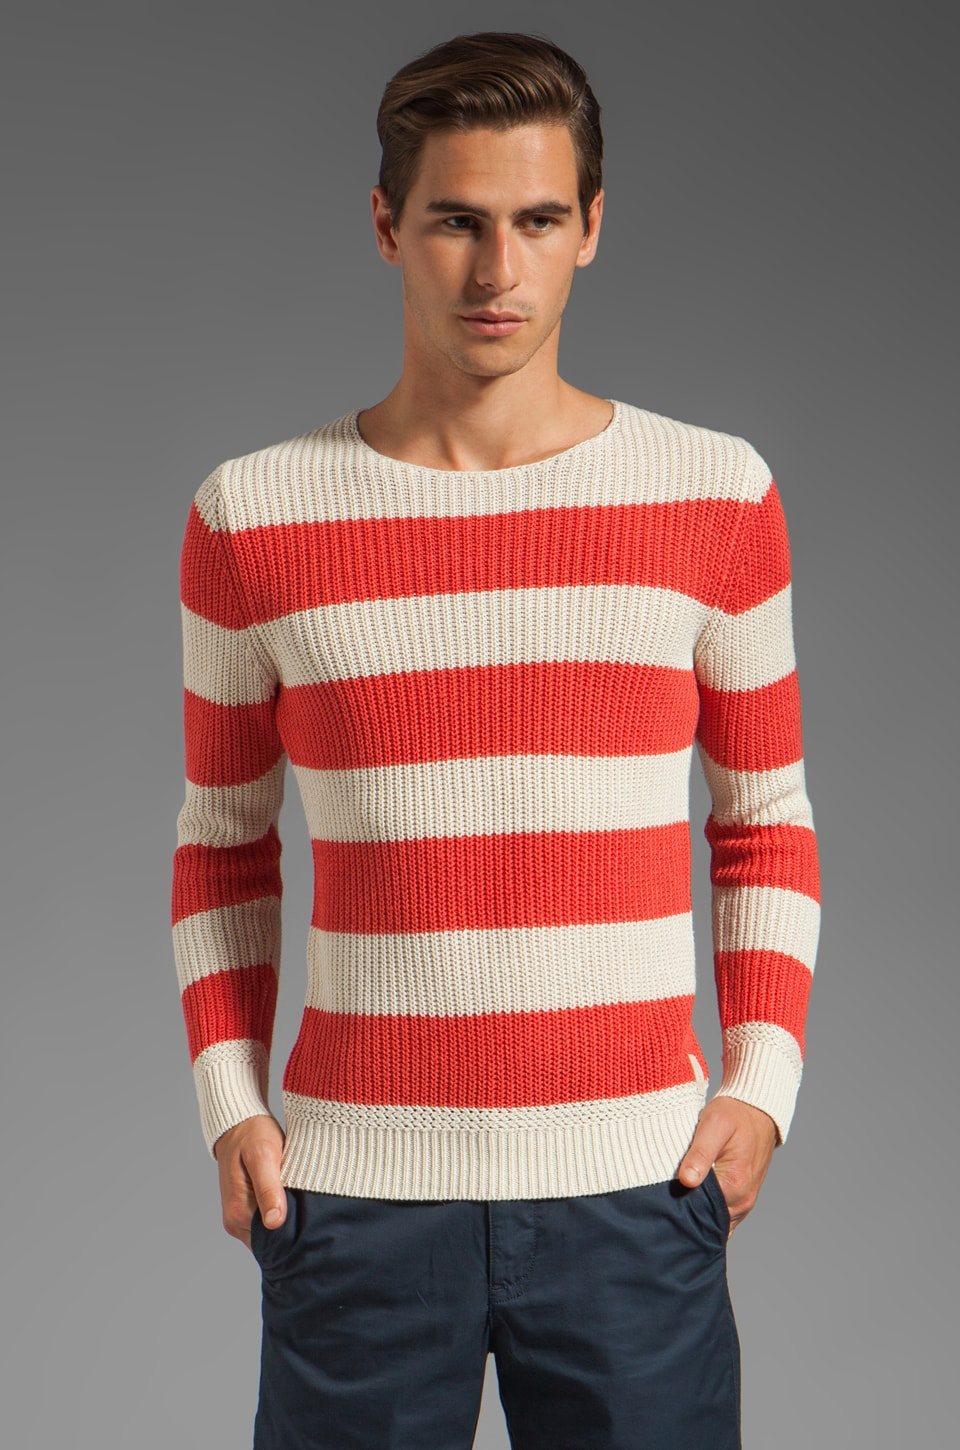 Scotch & Soda Scotch & Stripe Knit Sweater in Orange